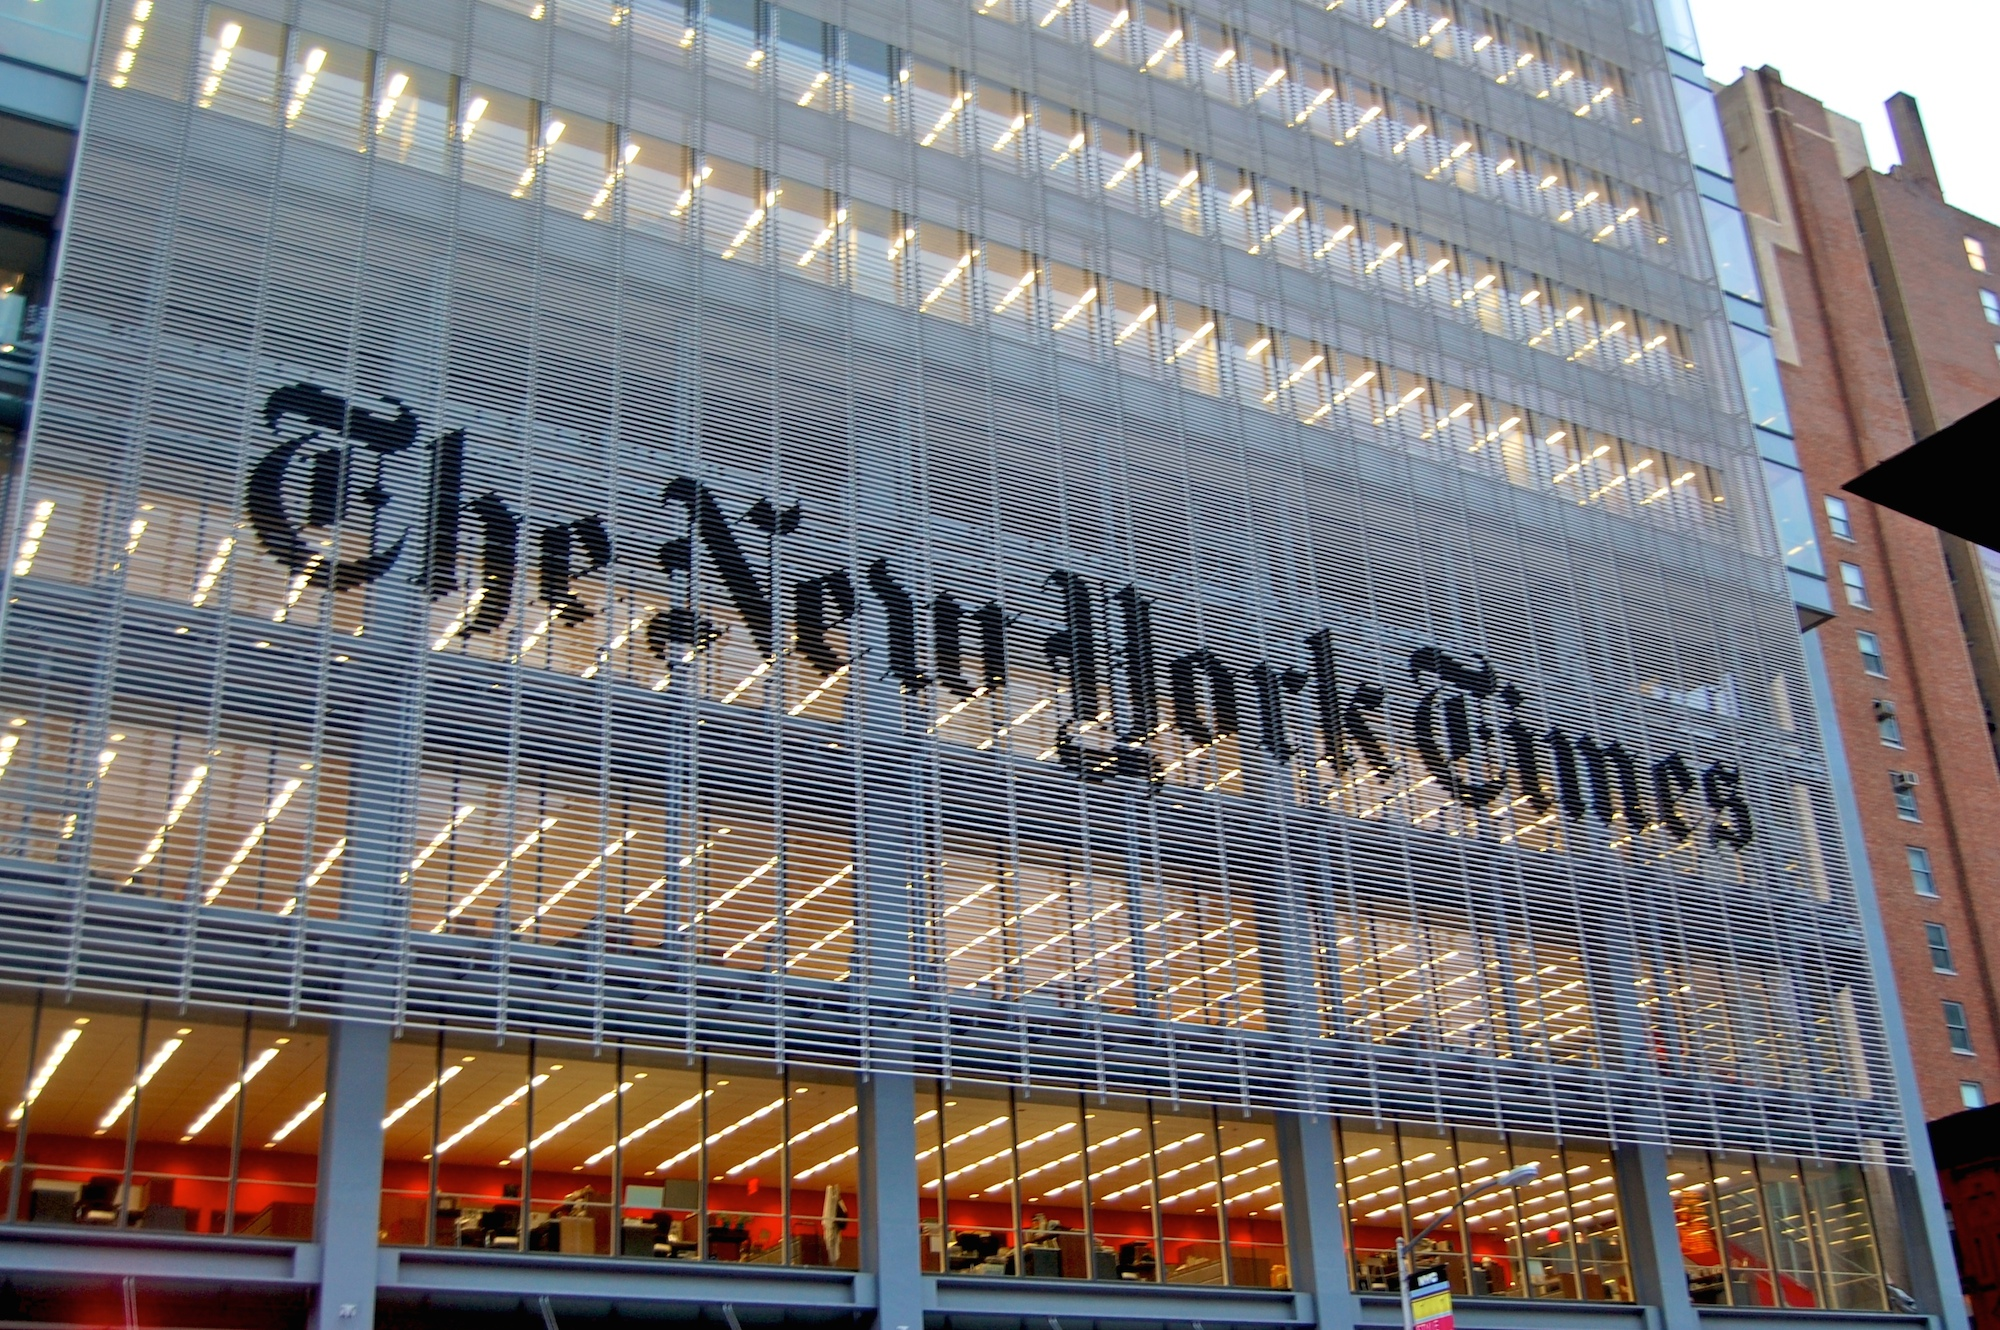 New York Times headquarters.